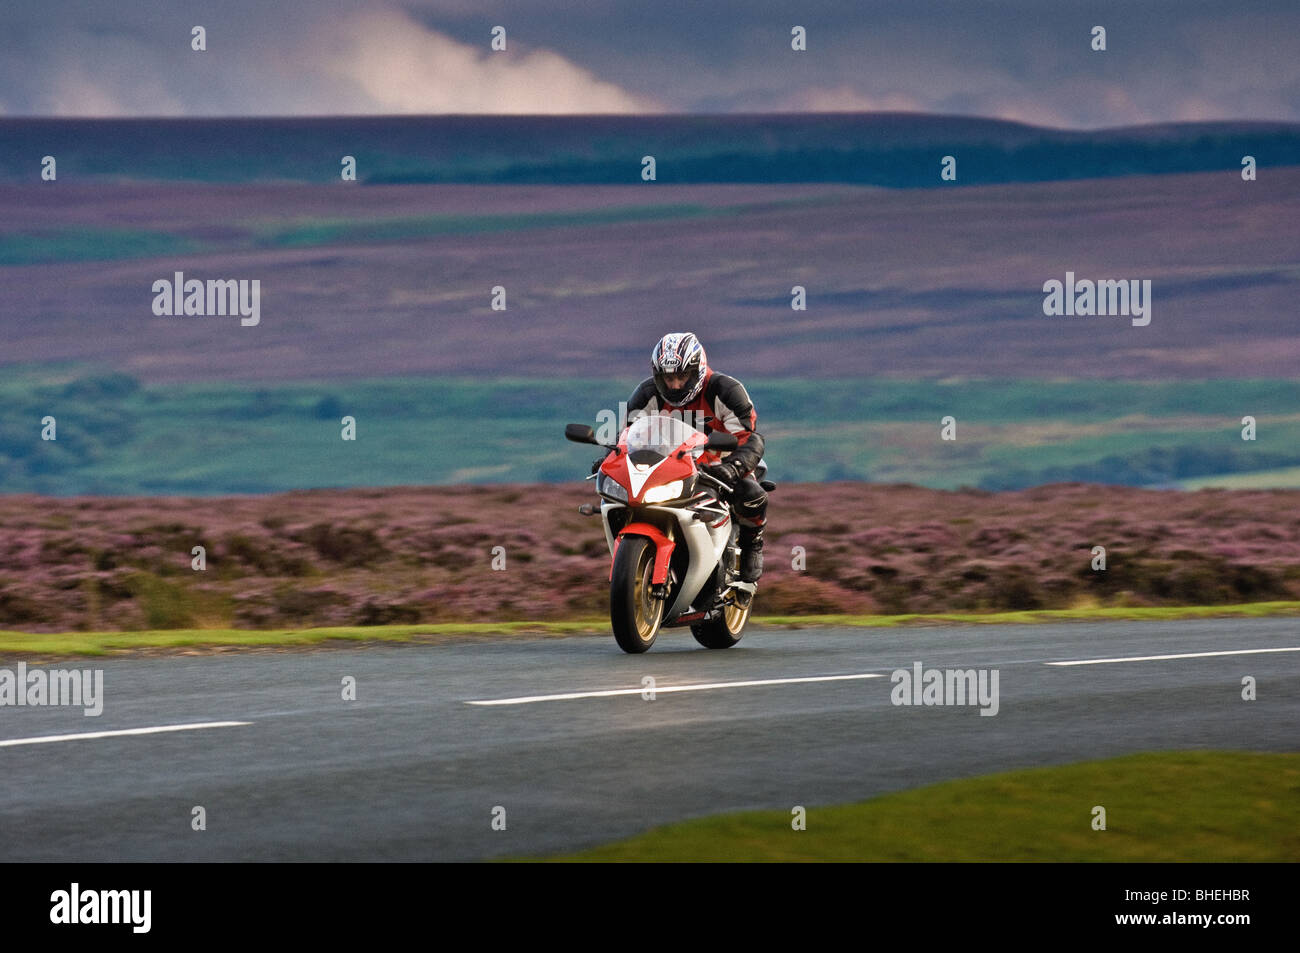 Motorbike and rider on road in the North Yorkshire Moors, UK - Stock Image